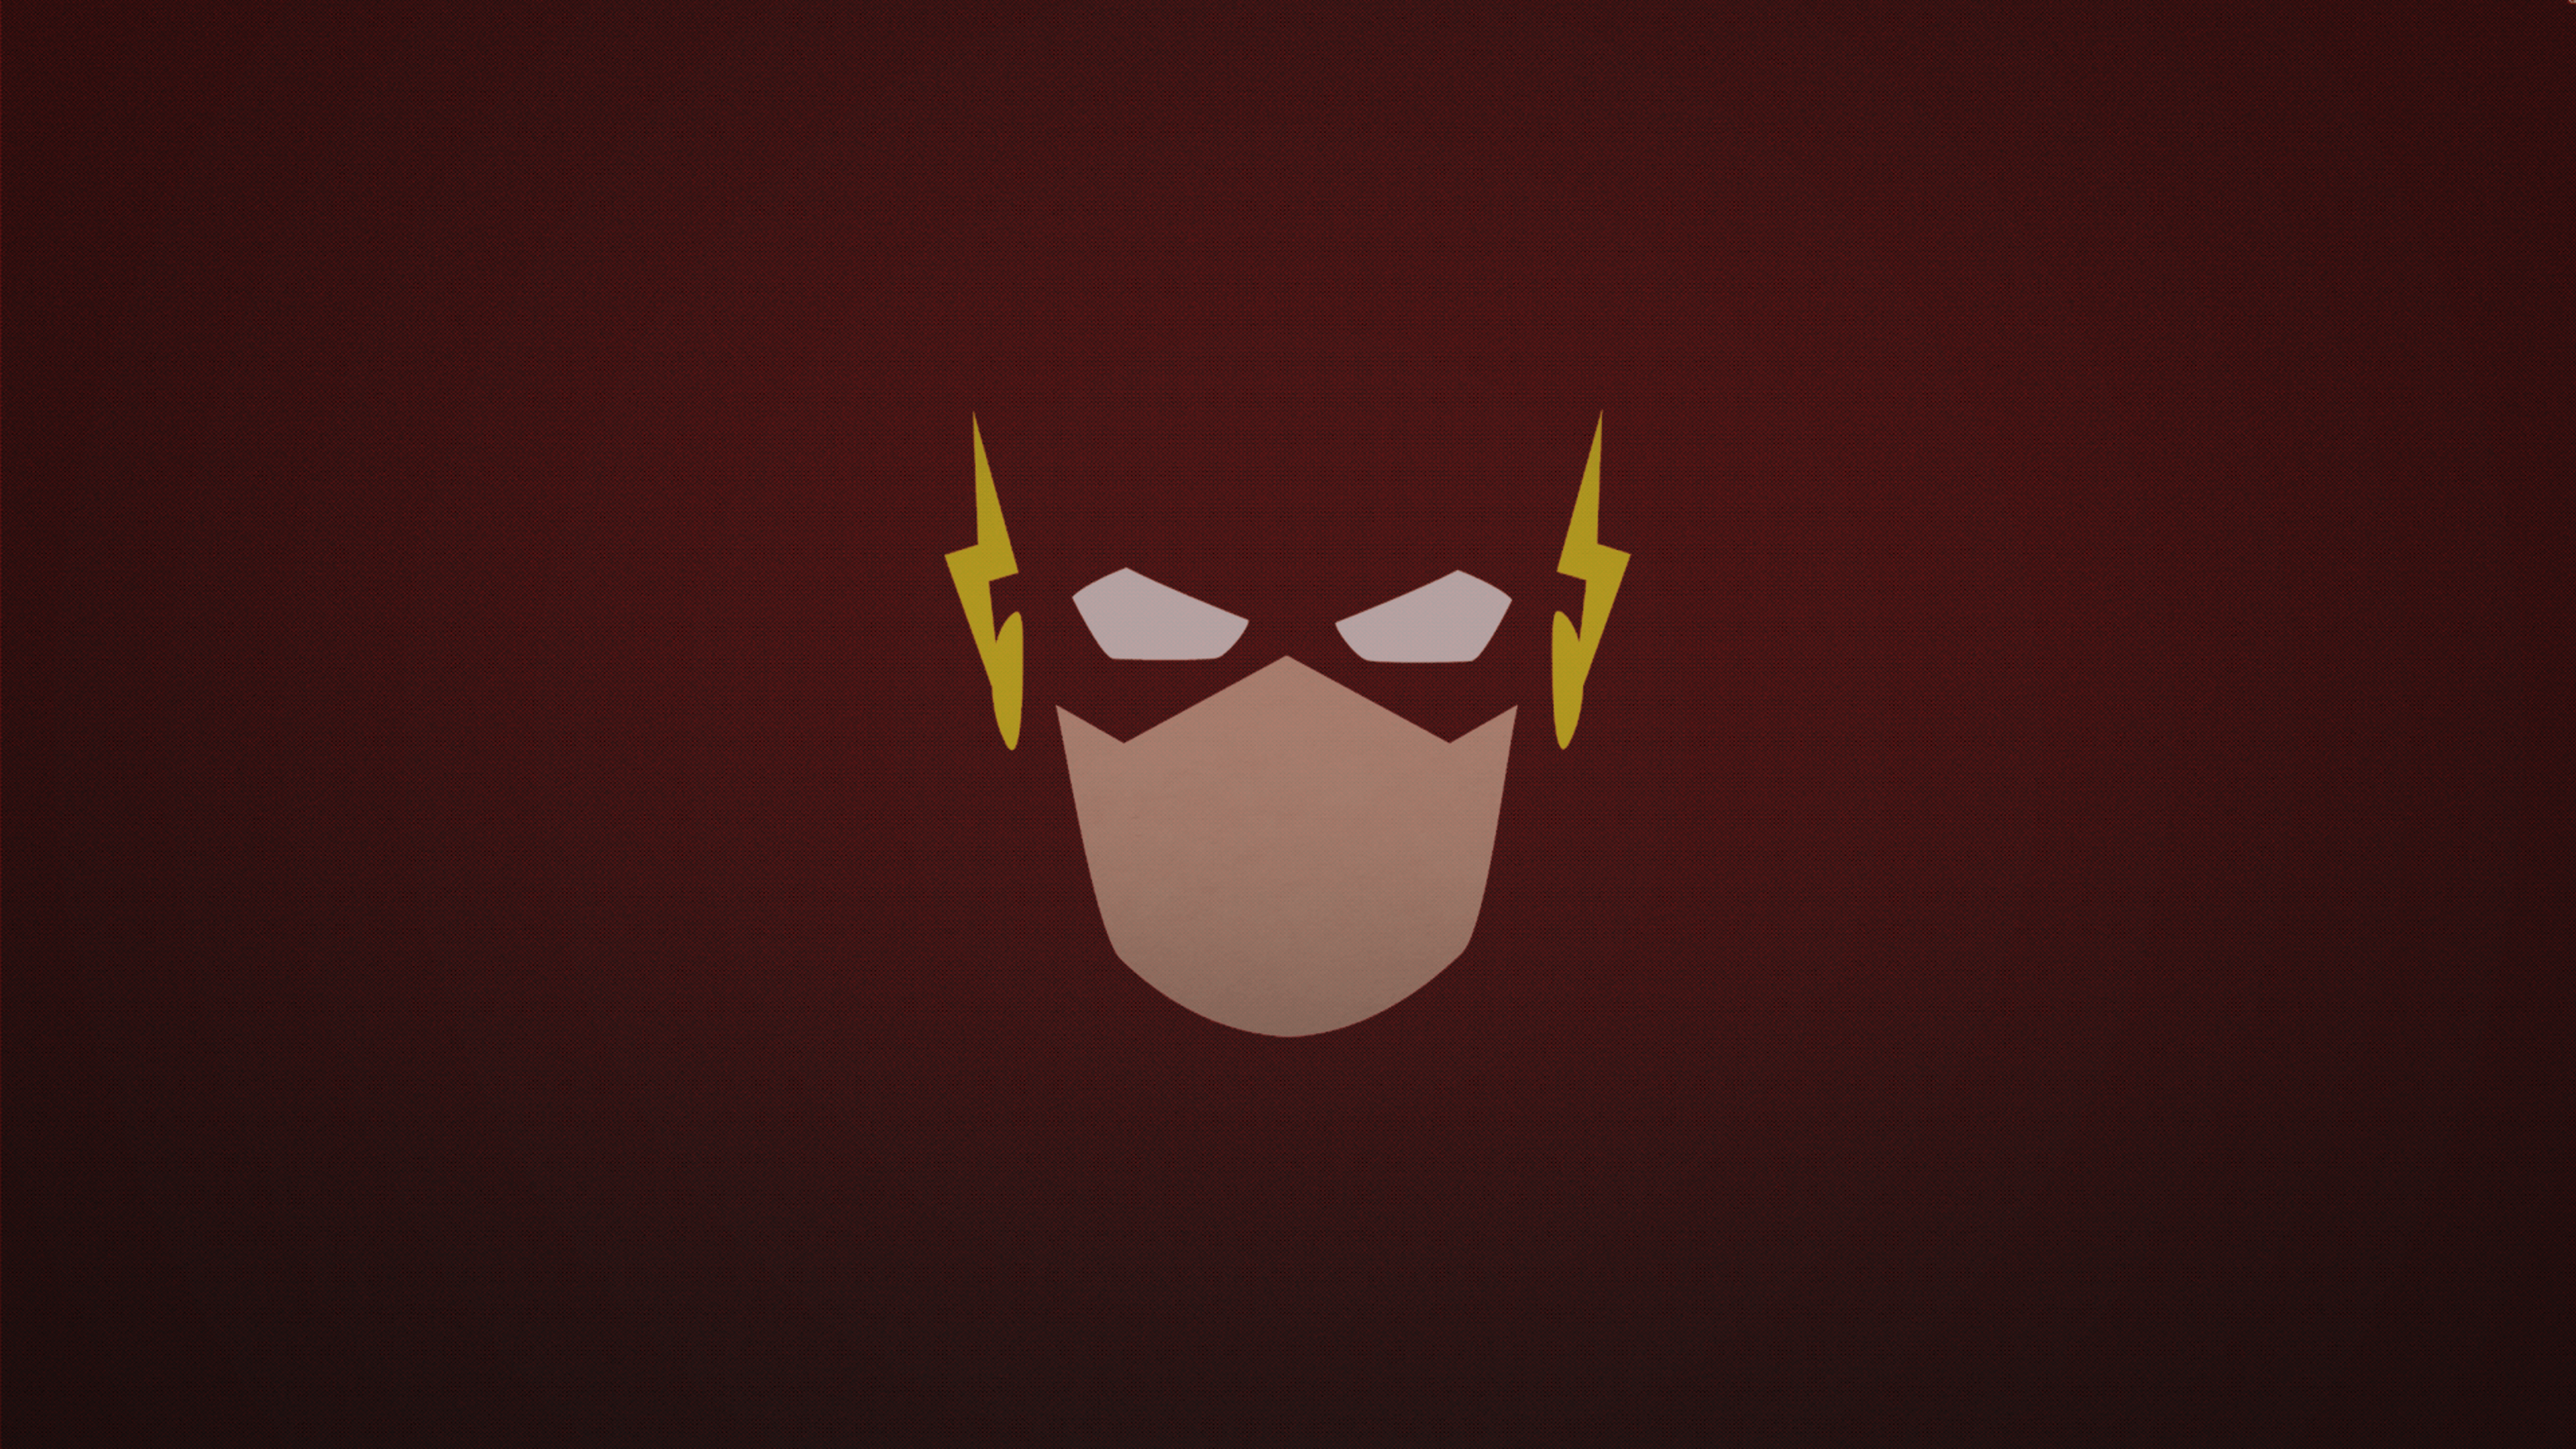 The Flash Wallpapers - Wallpaper Cave The Flash Wallpaper